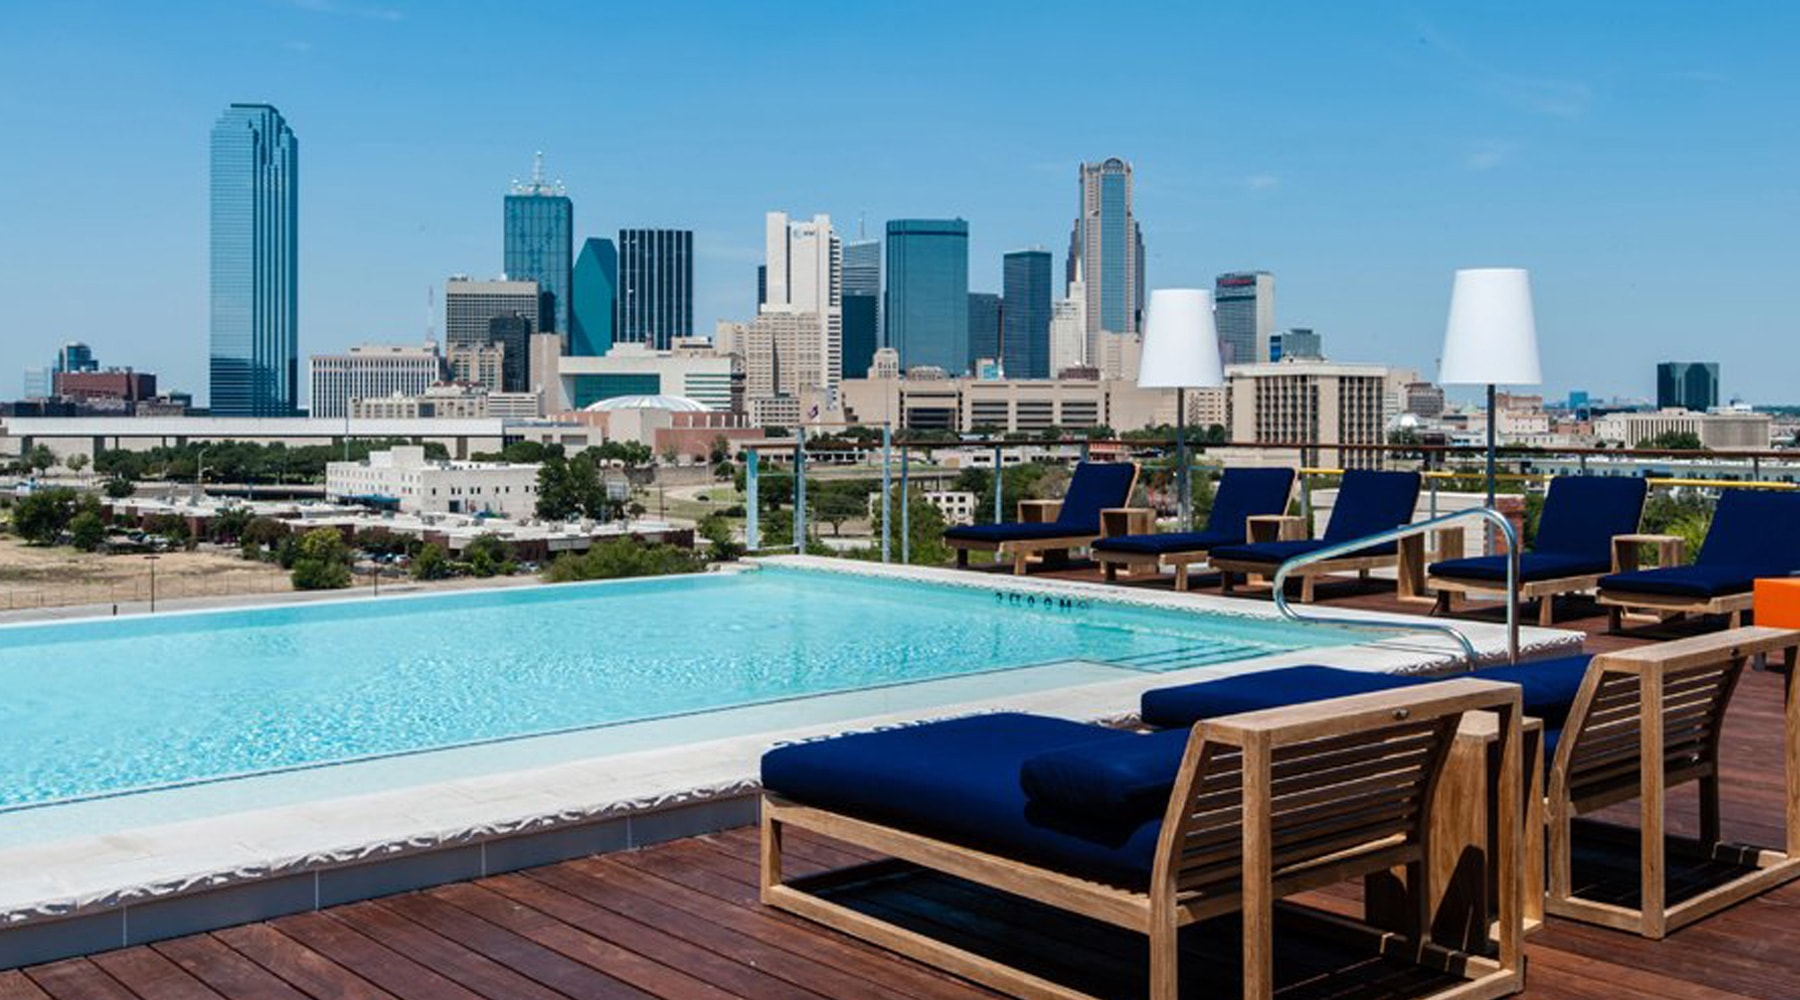 Canvas Lifestyle Hotel Dallas Rooftop pool